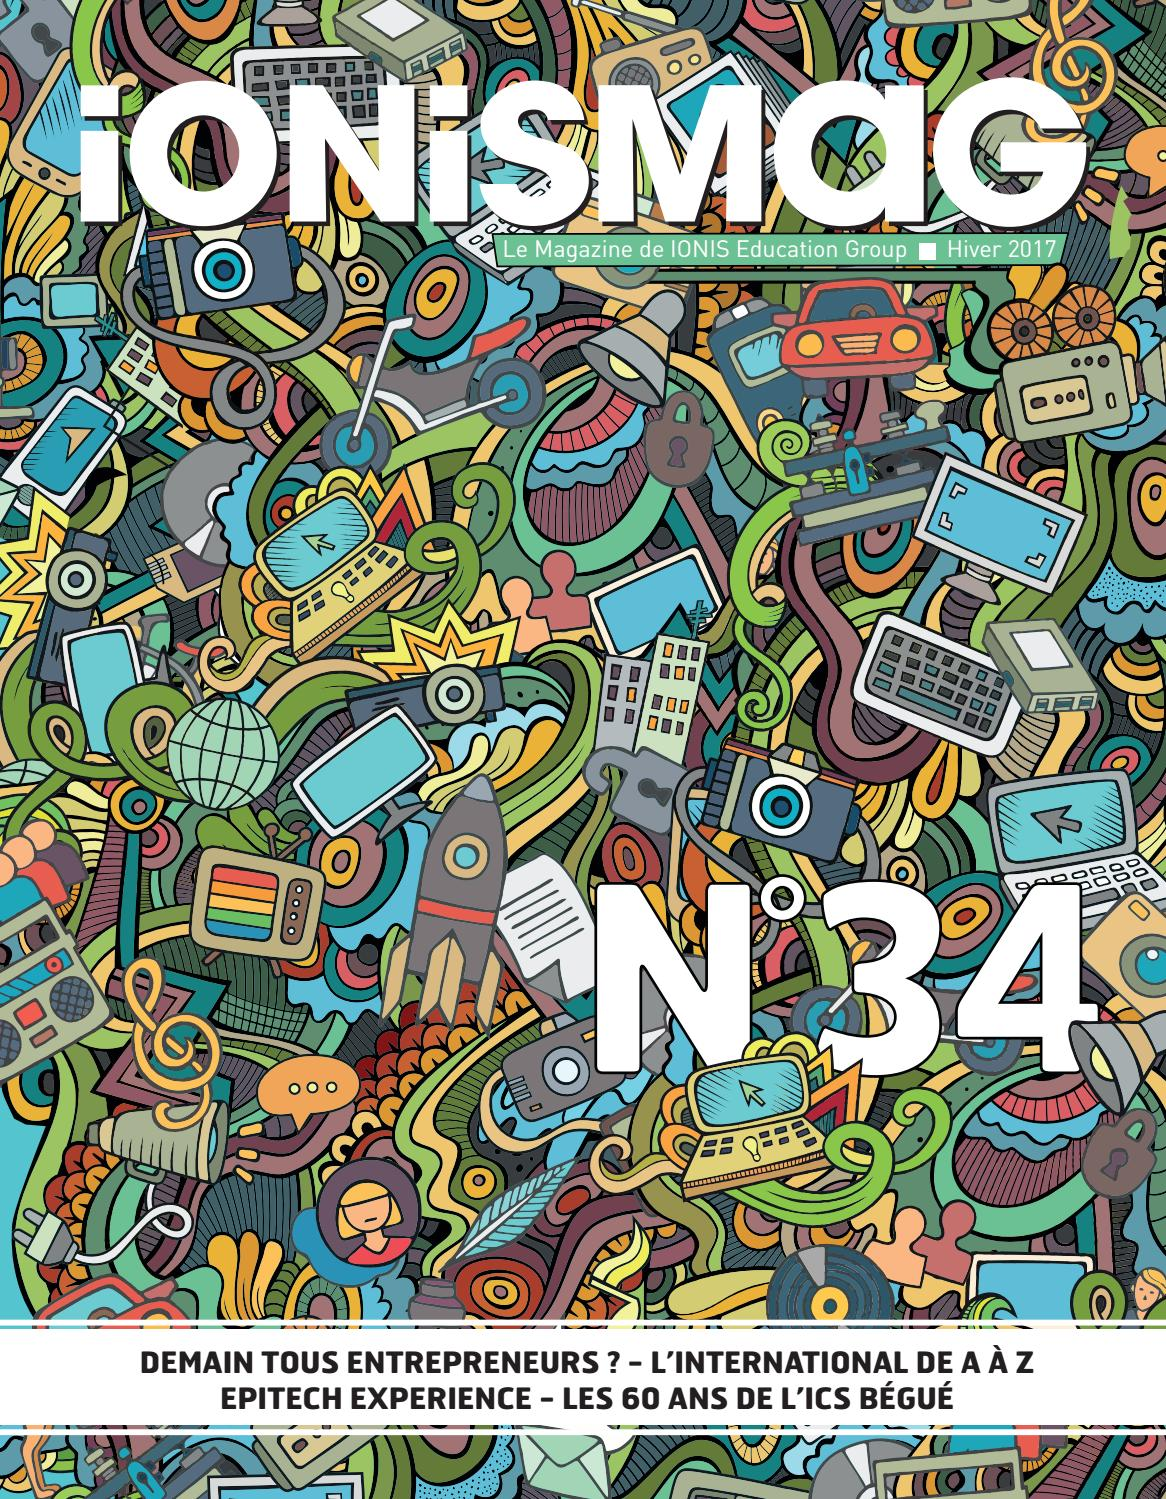 ionismag34 by ionis education group issuu